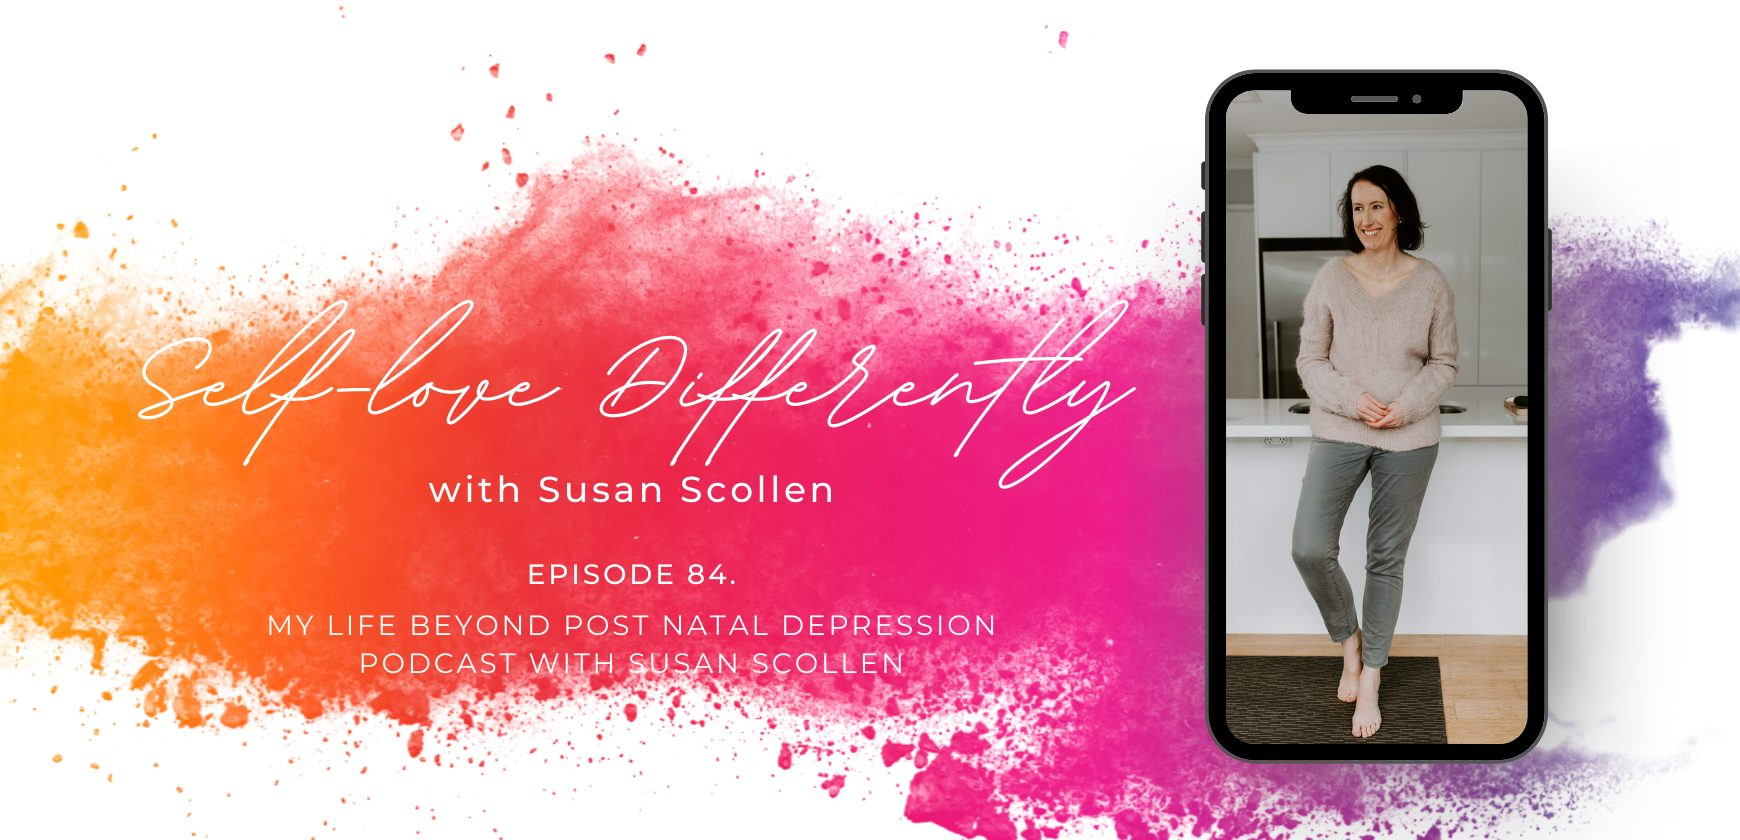 Self-love Differently with Susan Scollen